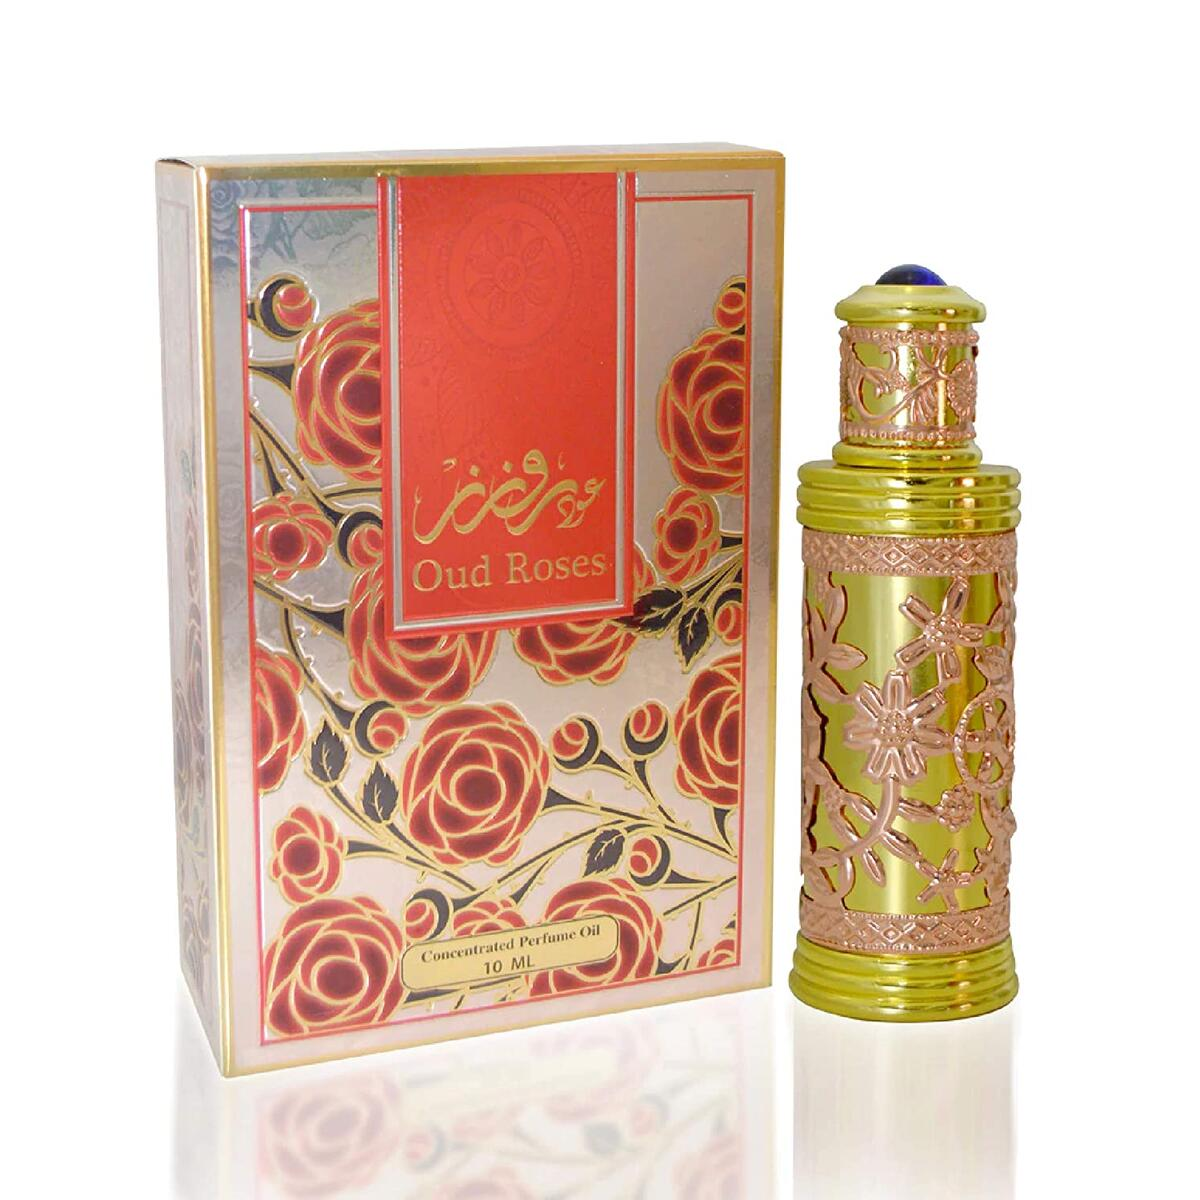 My Perfumes Oud Rose Concentrated Perfume Oil for Men & Women - 10ml